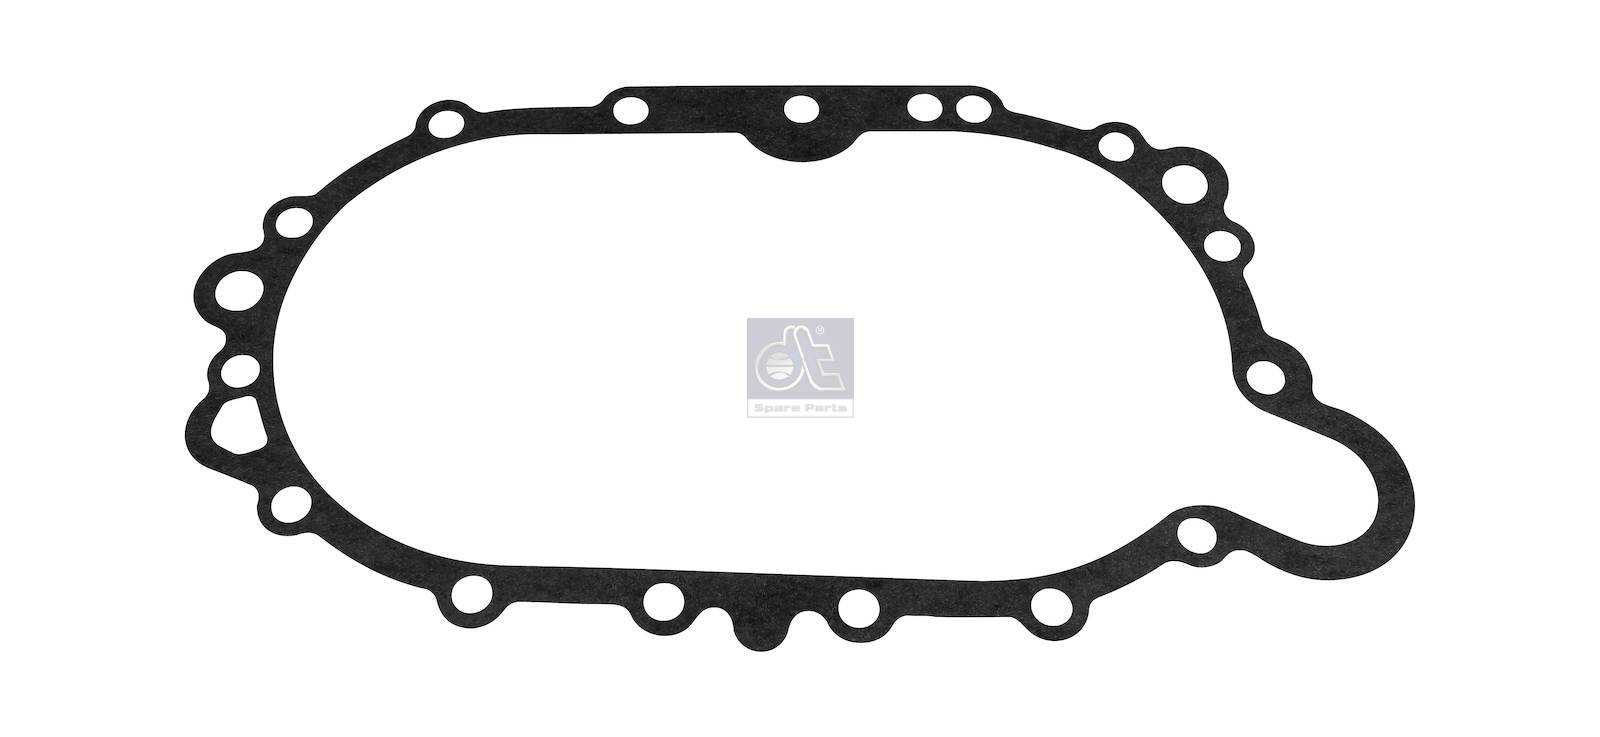 DT 1.24442 Gasket, axle drive 1414595 suitable for Scania